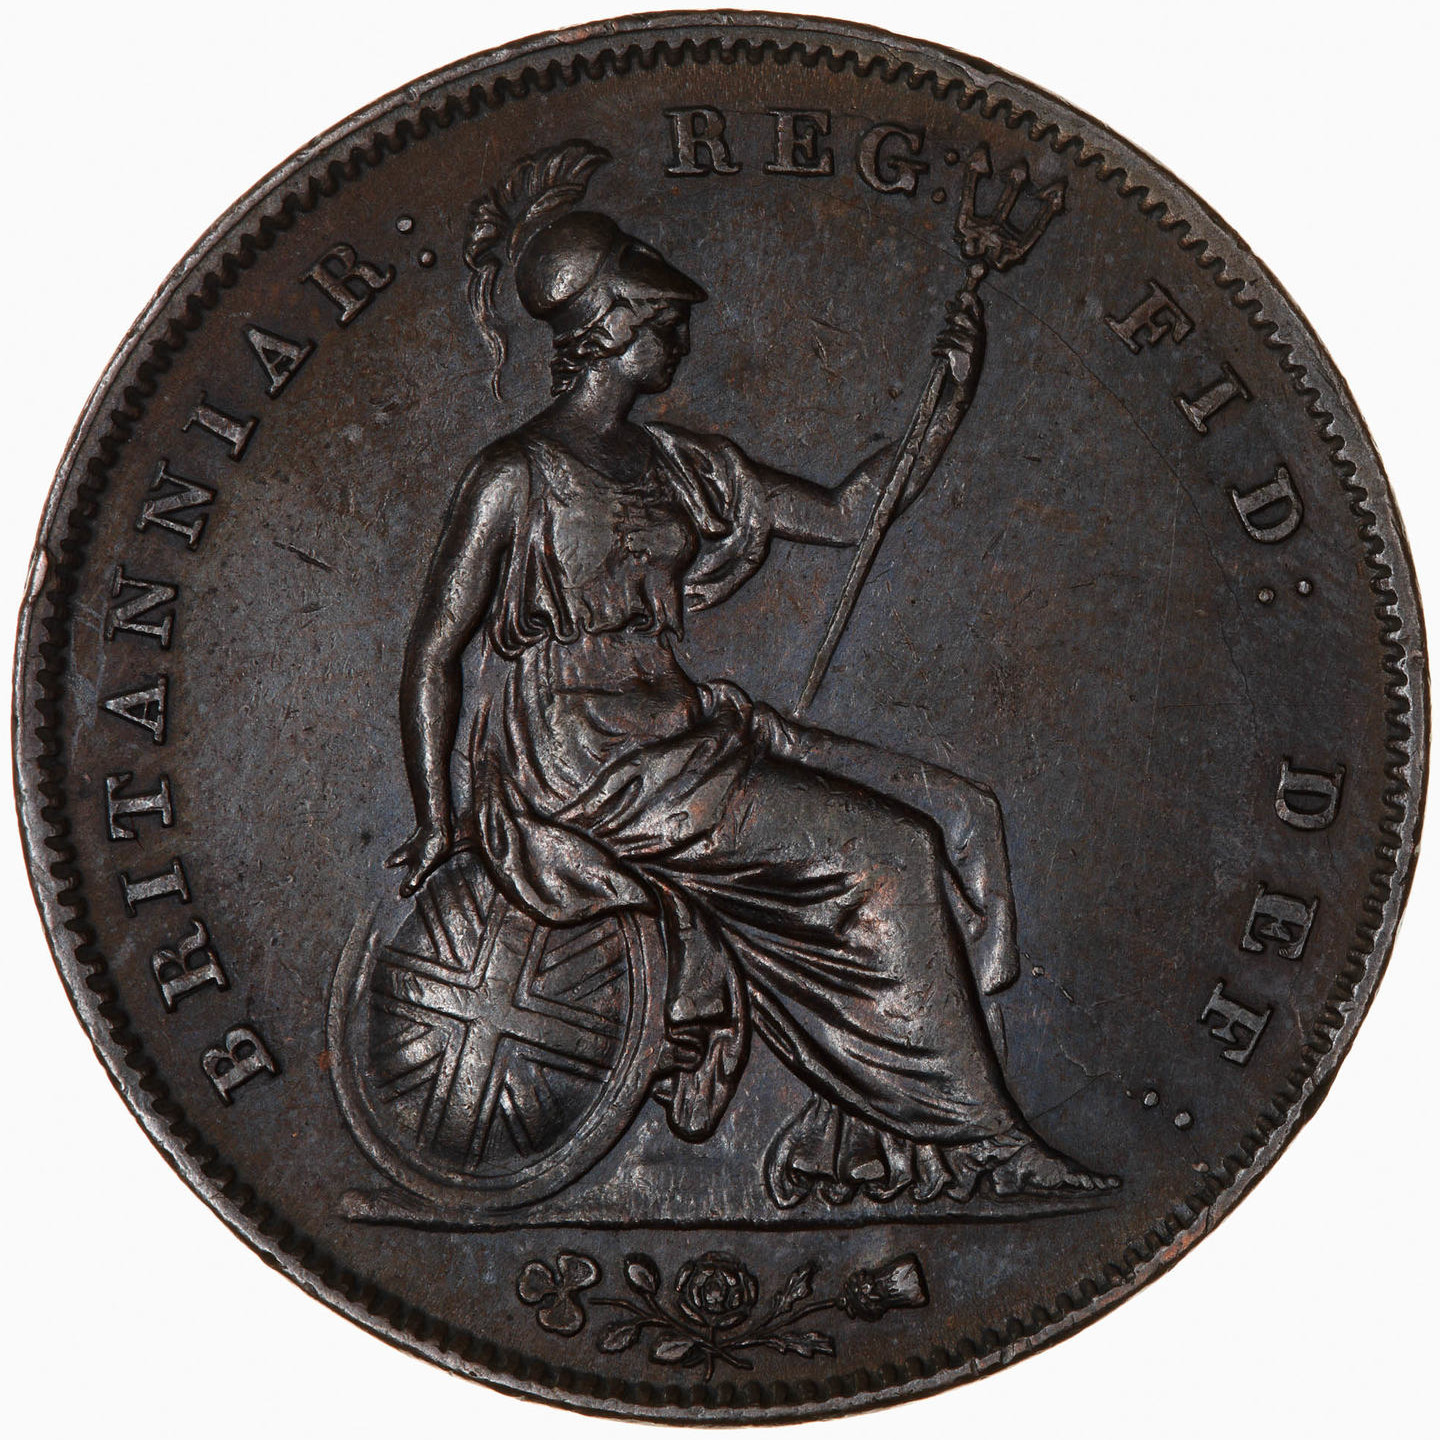 Penny 1844: Photo Coin - Penny, Queen Victoria, Great Britain, 1844